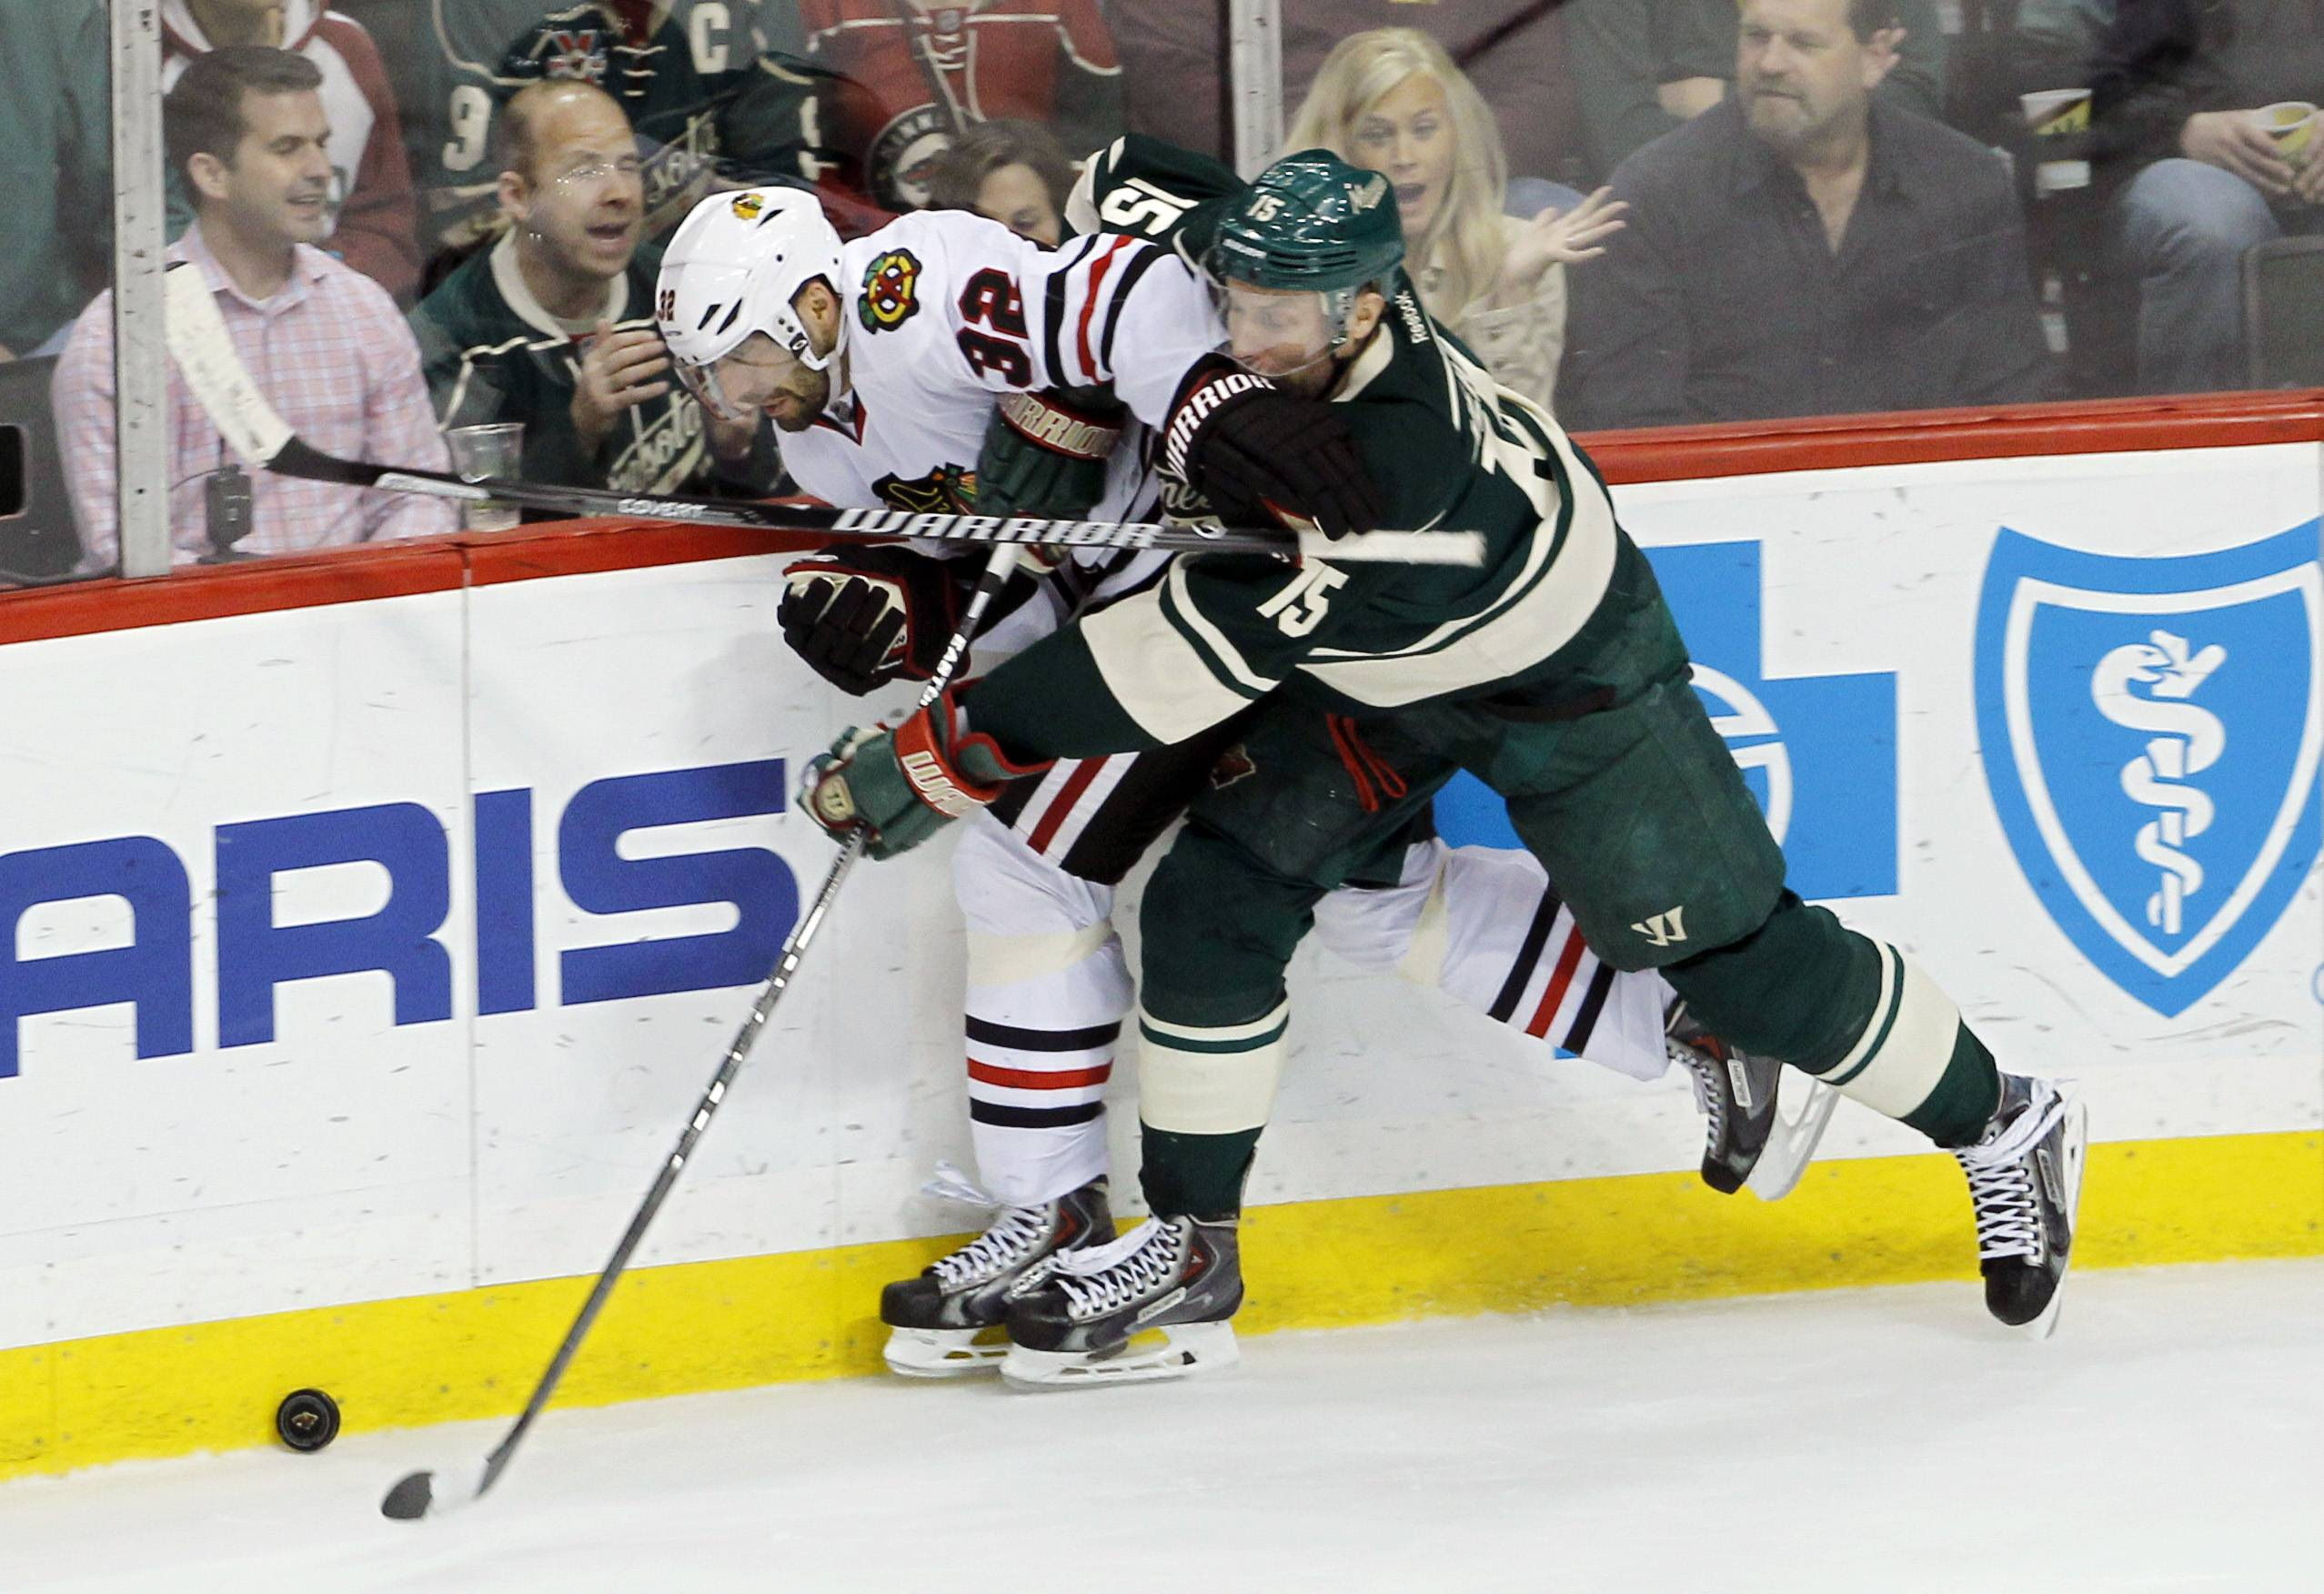 Chicago Blackhawks defenseman Michal Rozsival (32) and Minnesota Wild left wing Dany Heatley (15) battle for the puck during the third period.